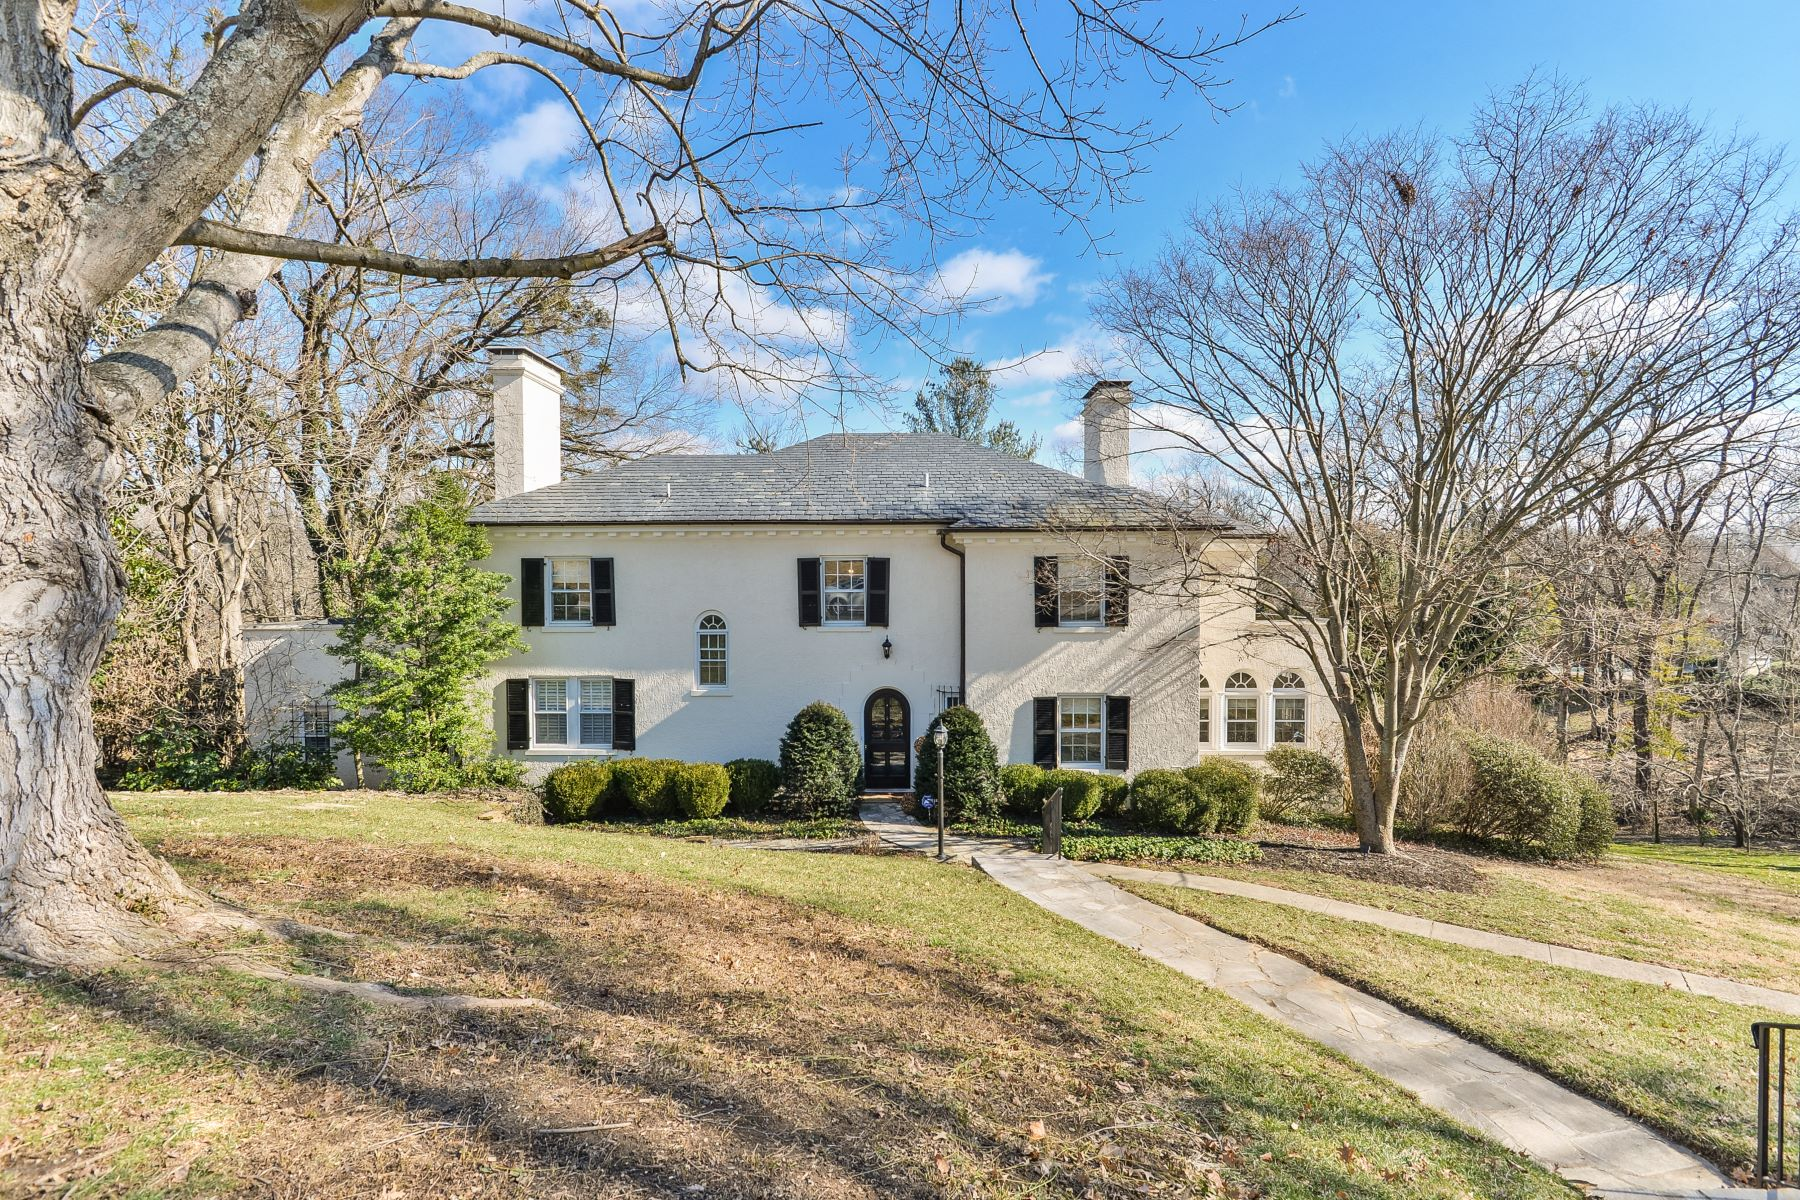 Single Family Home for Sale at 420 Mockingbird Hill Road 420 Mockingbird Hill Road Louisville, Kentucky 40207 United States